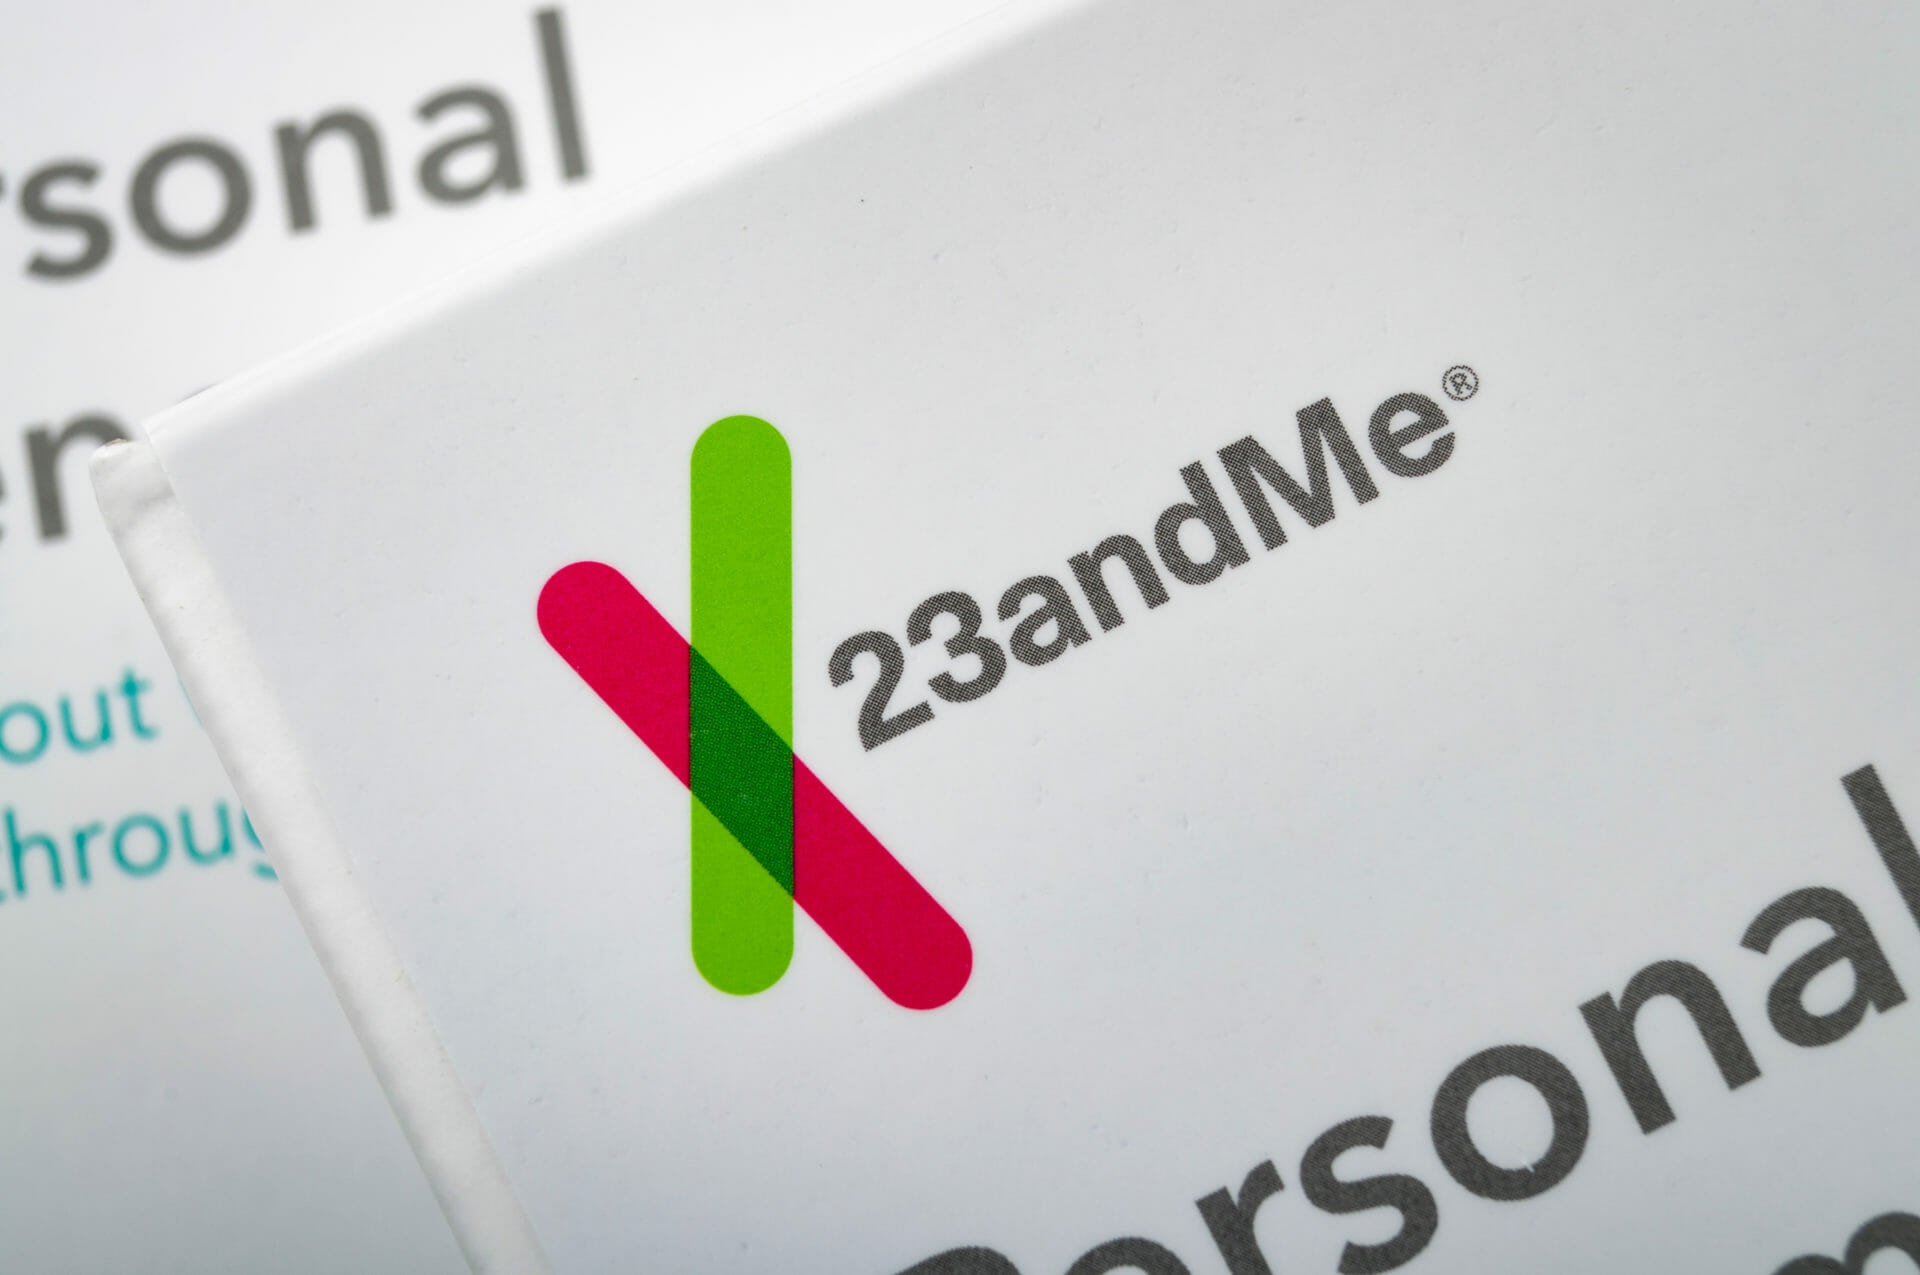 Illustrative editorial of two personal genome saliva collection kits - 23andMe